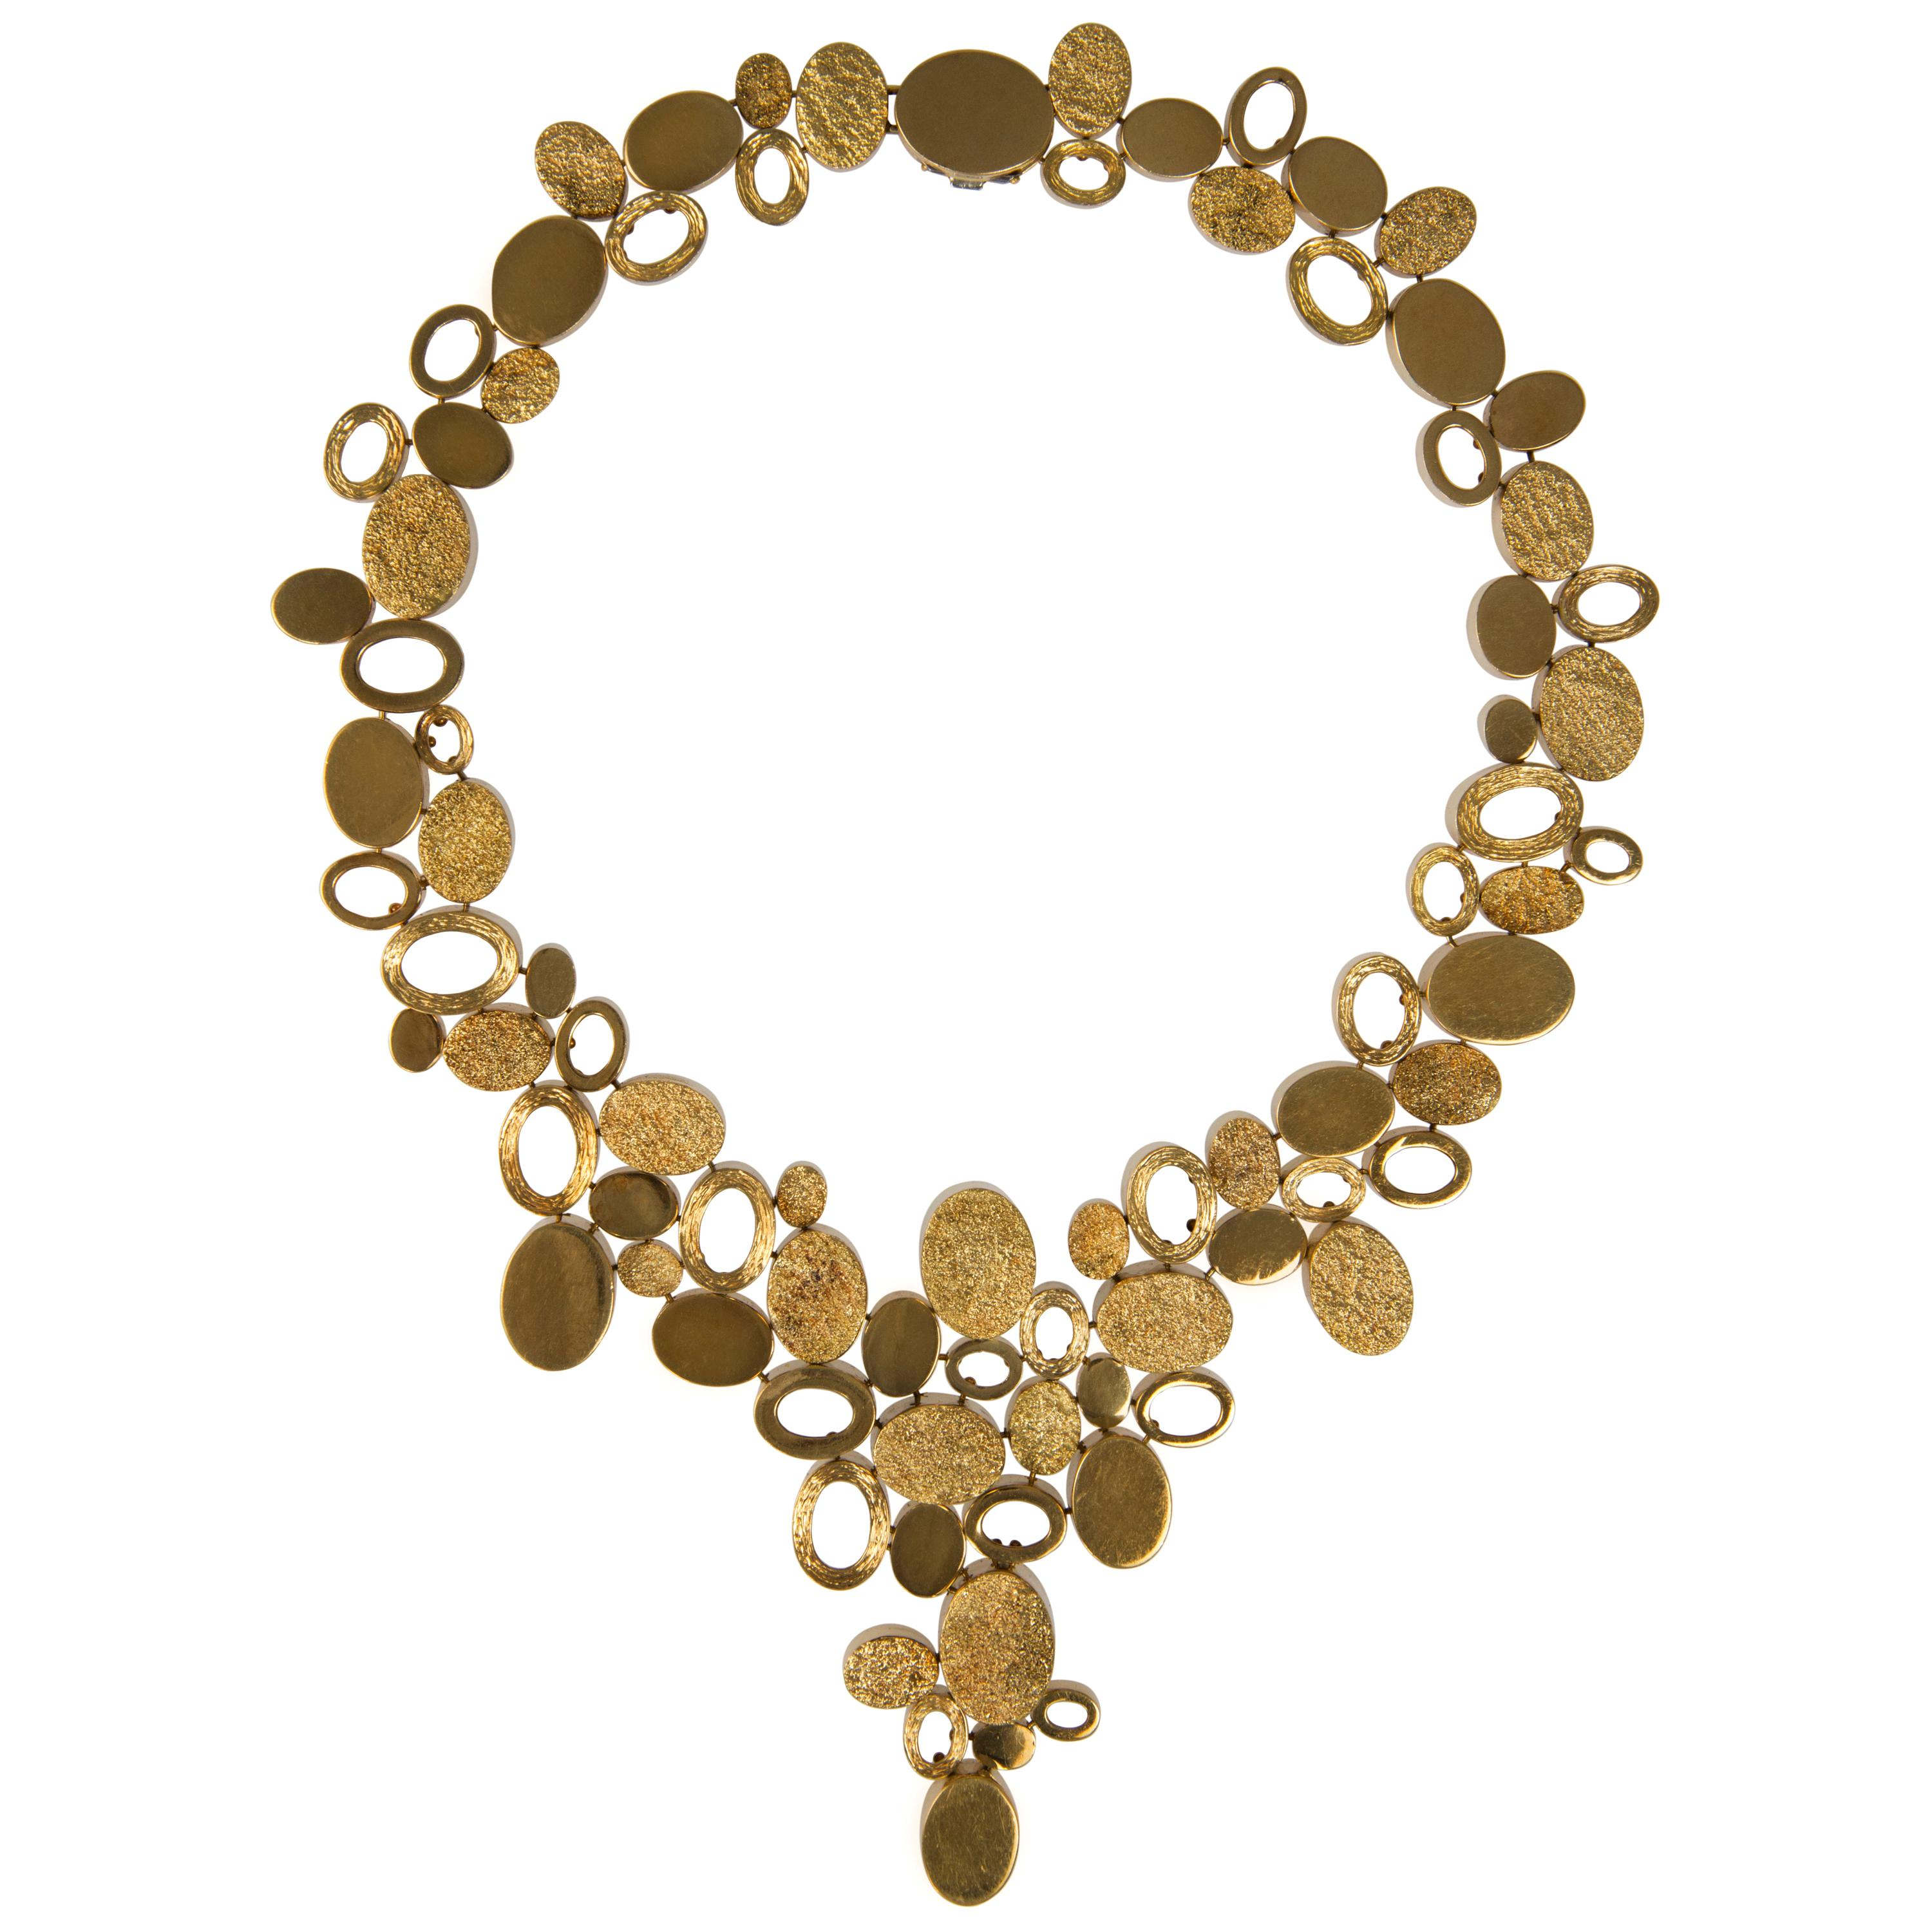 1970s Handmade Textured and Polished Gold Necklace